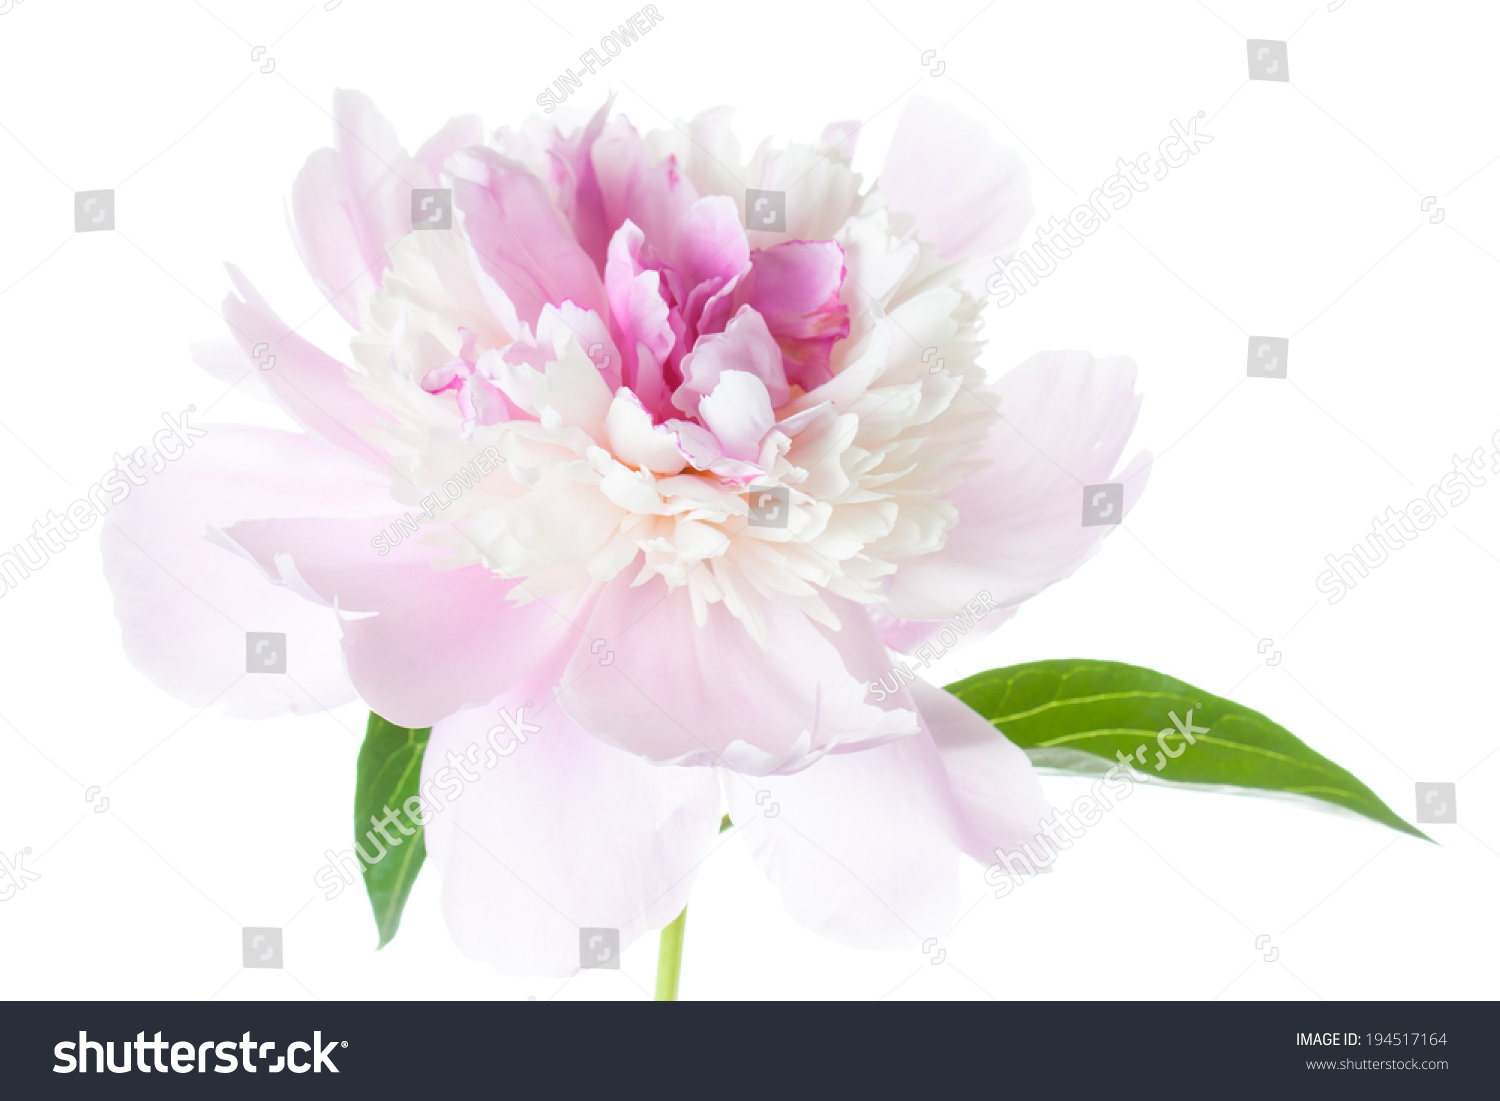 Peonies, Pink Flowers On White Background, Beautiful